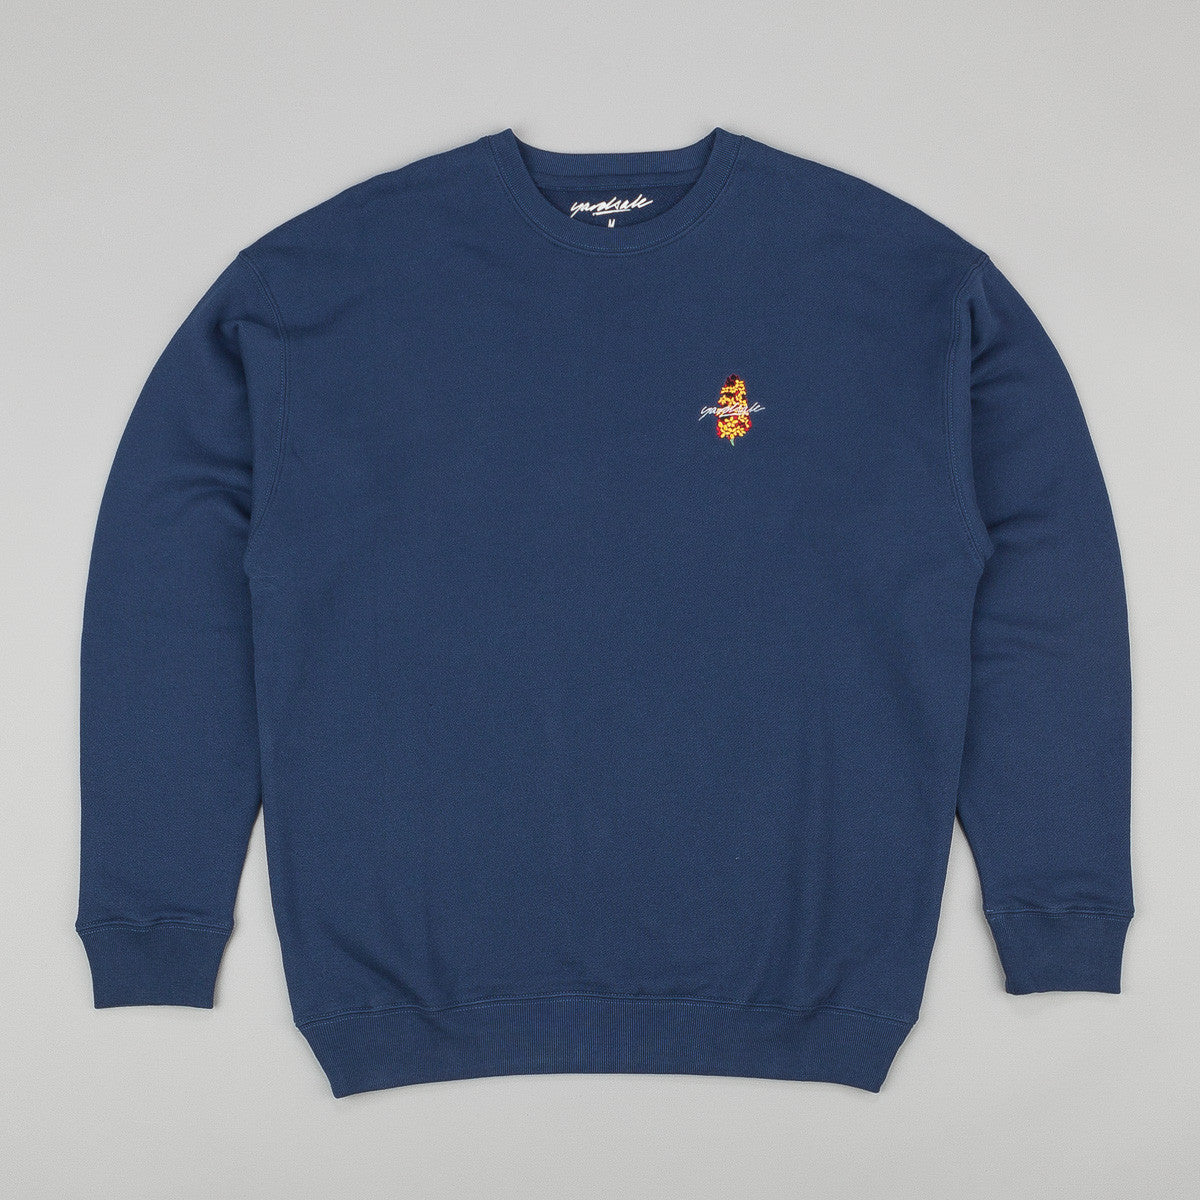 Yardsale Crew Neck Sweatshirt - Blue